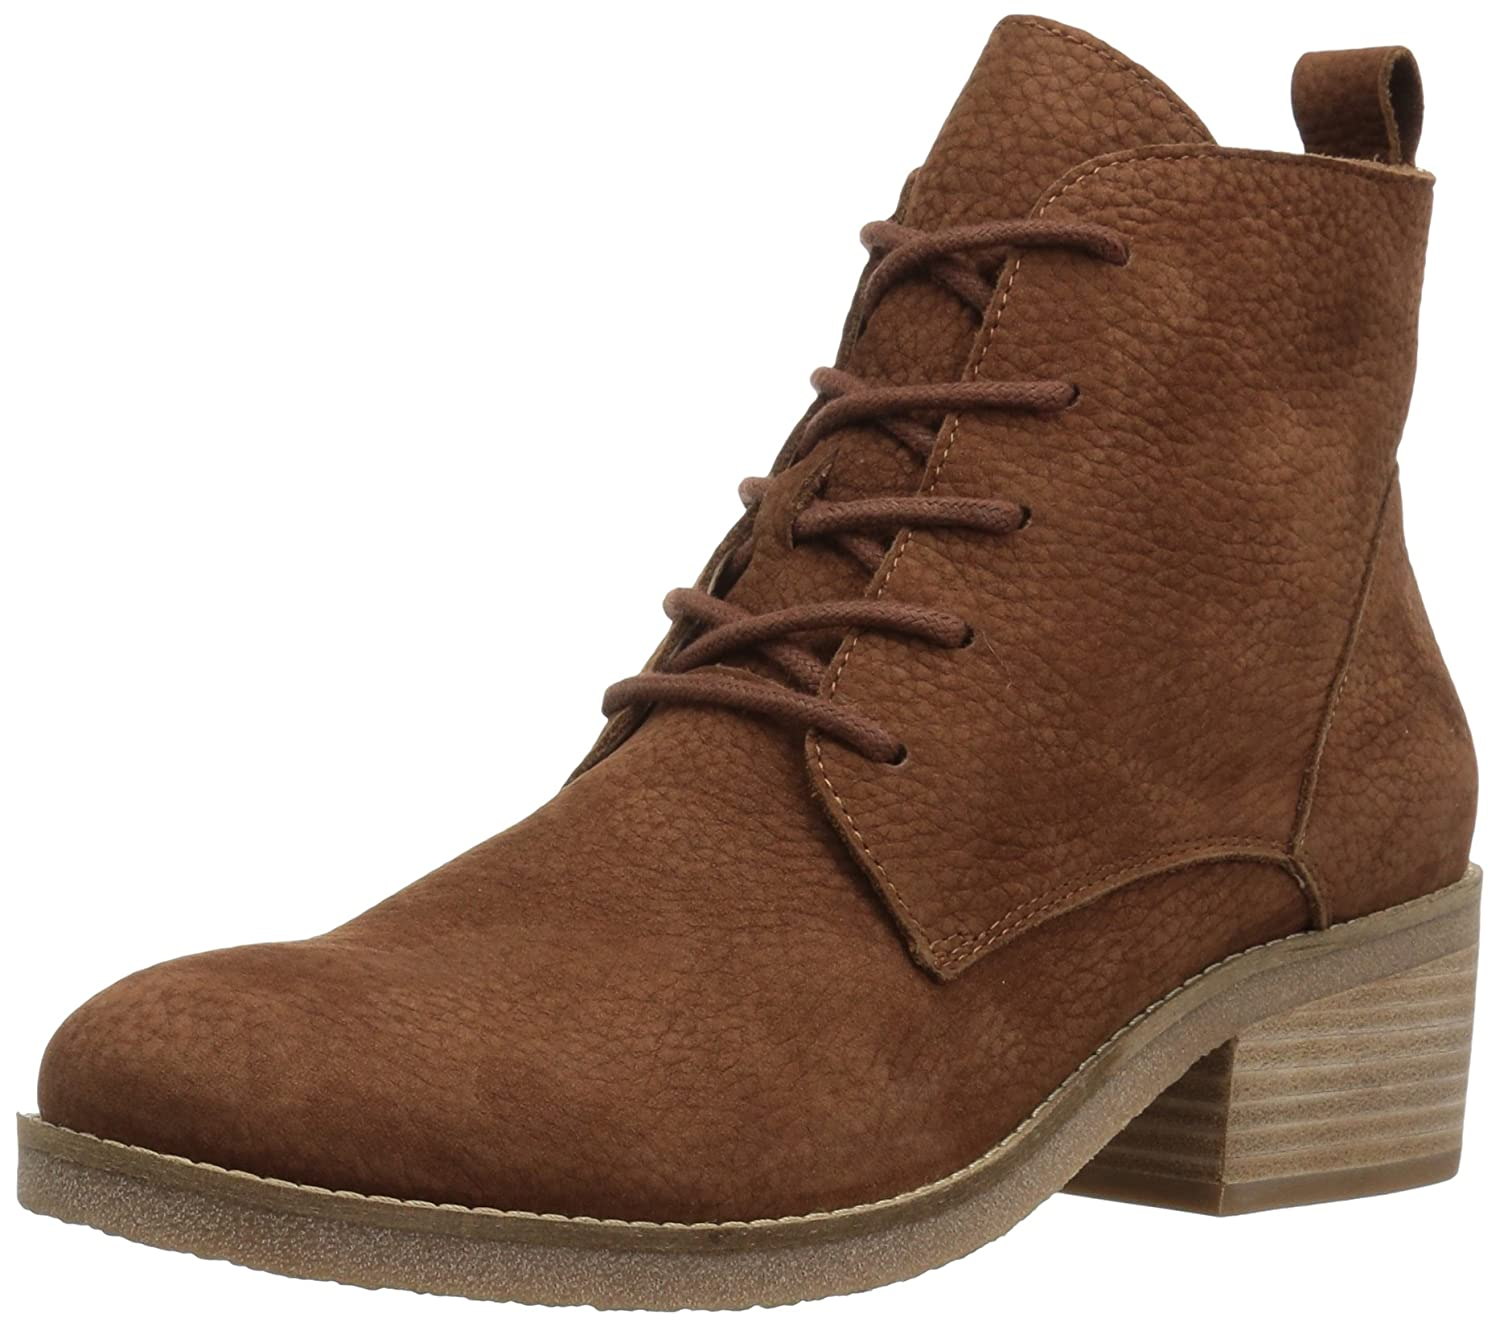 Lucky Brand Women's Tamela Fashion Boot B06XD7LTFR 10 M US|Toffee